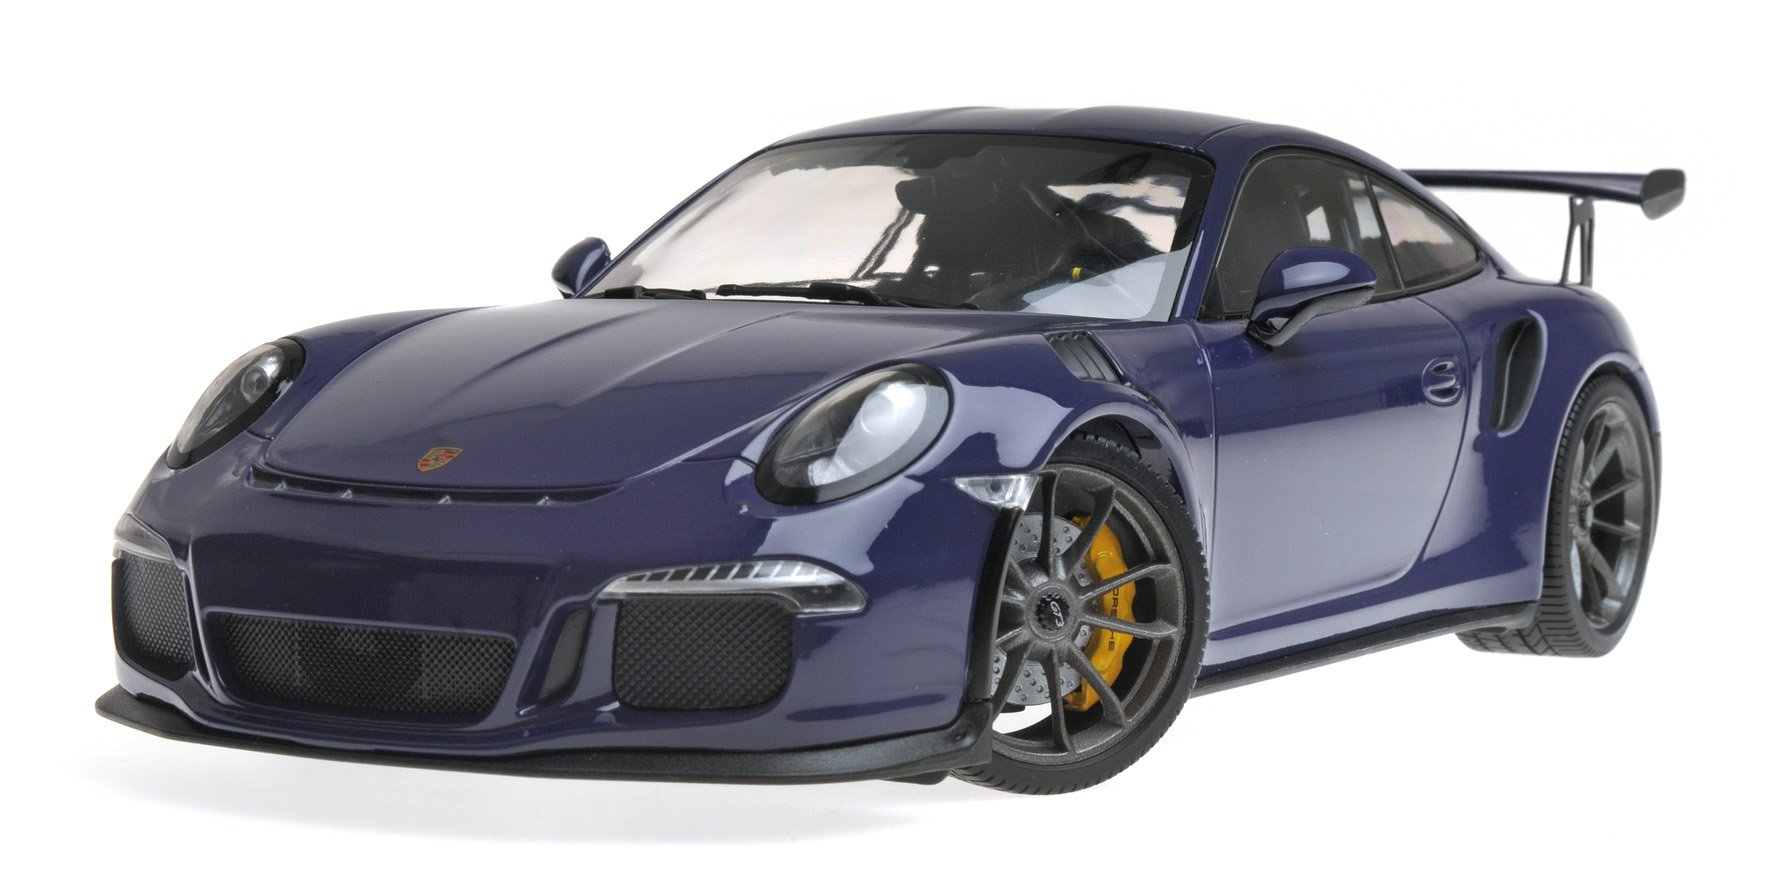 2015 Porsche 911 GT3 RS Ultra Violet Limited Edition to 1,002 Pieces Worldwide 1/18 Diecast Model Car by Minichamps 155066221